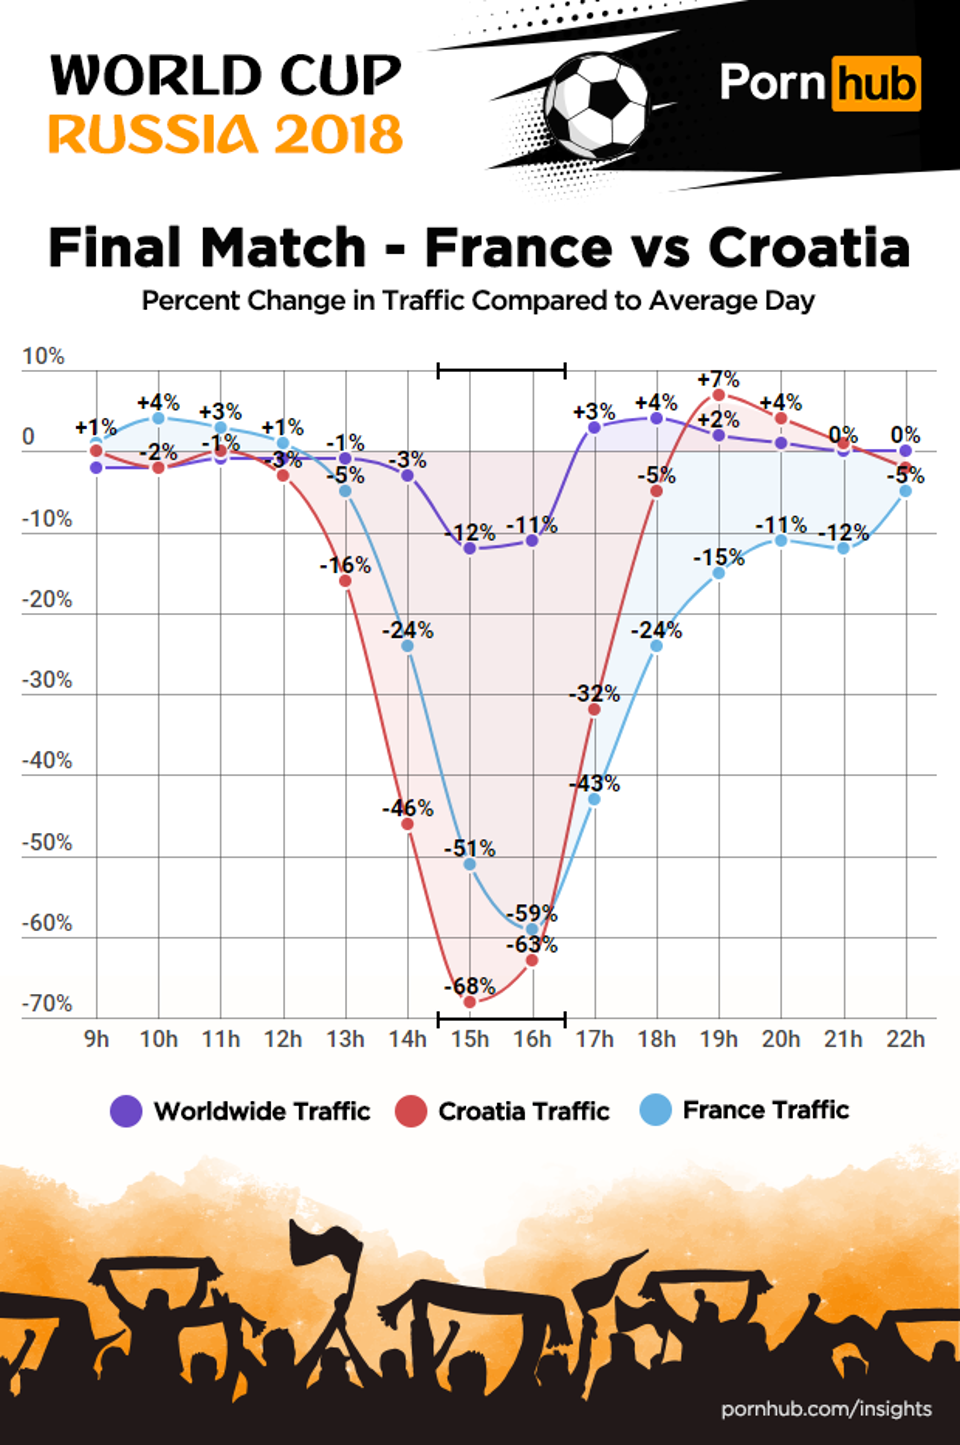 Pornhub World Cup Insights, France versus Croatia